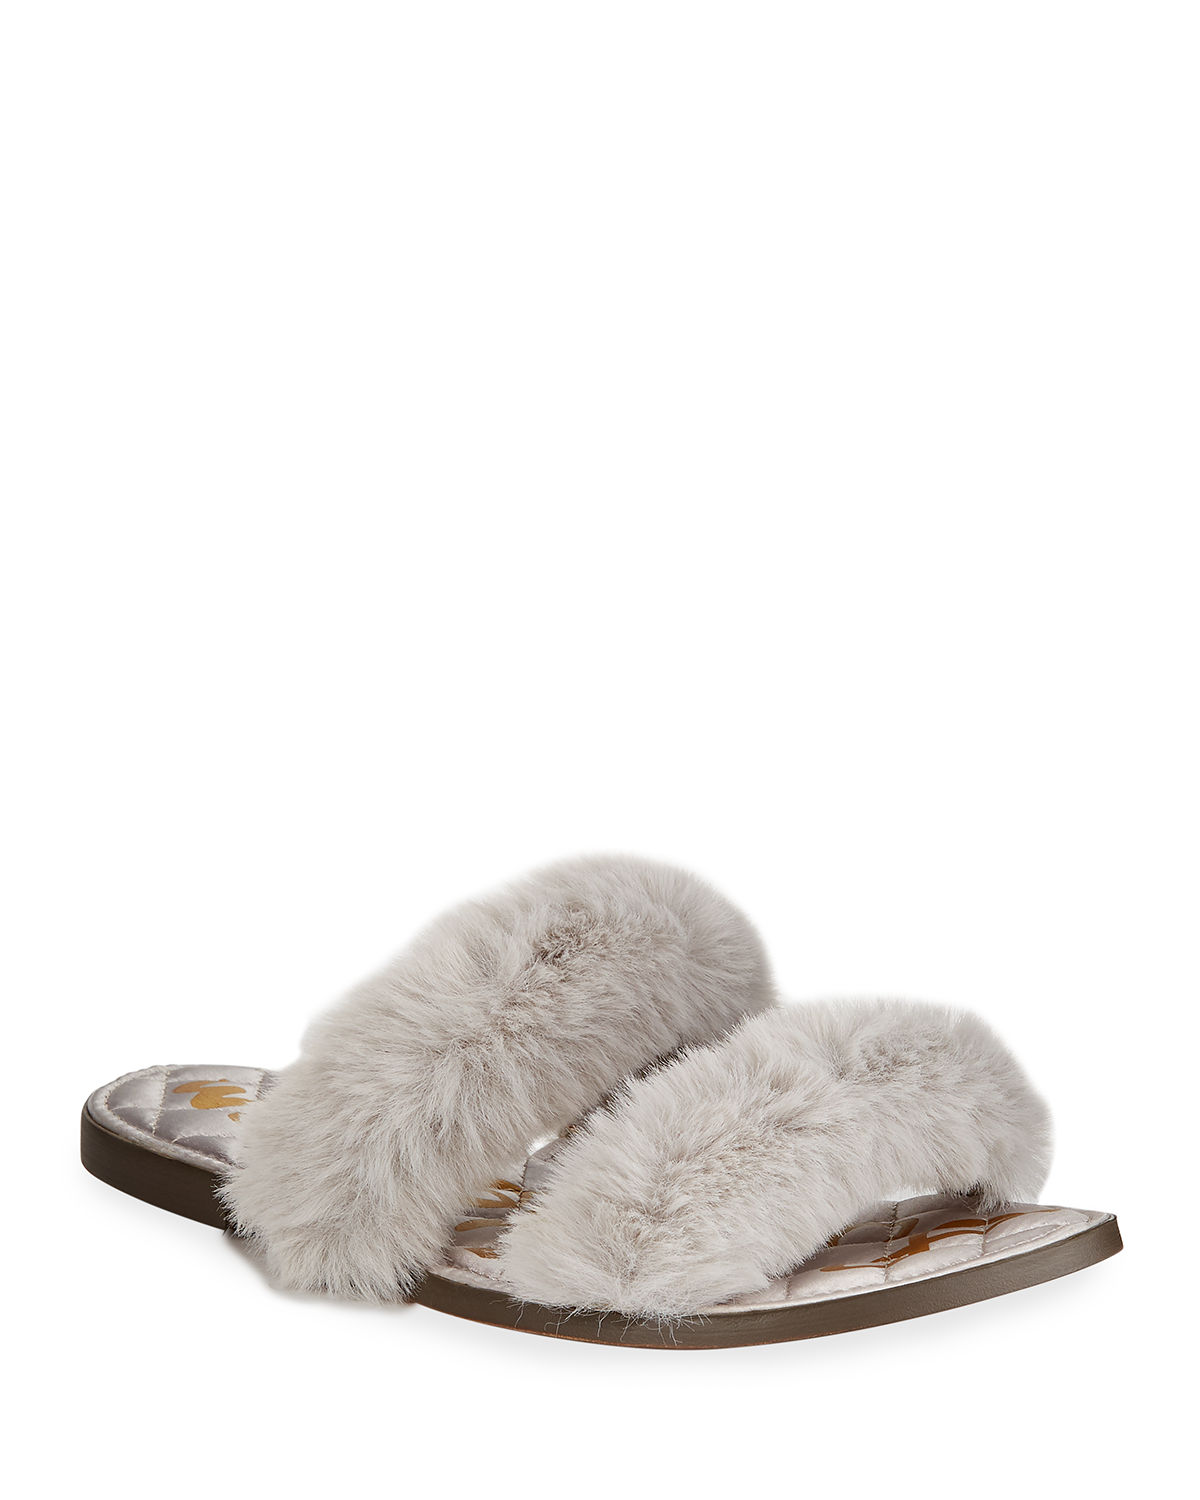 184bc55aed3a Sam Edelman Griselda Faux-Fur Sandals In Light Gray